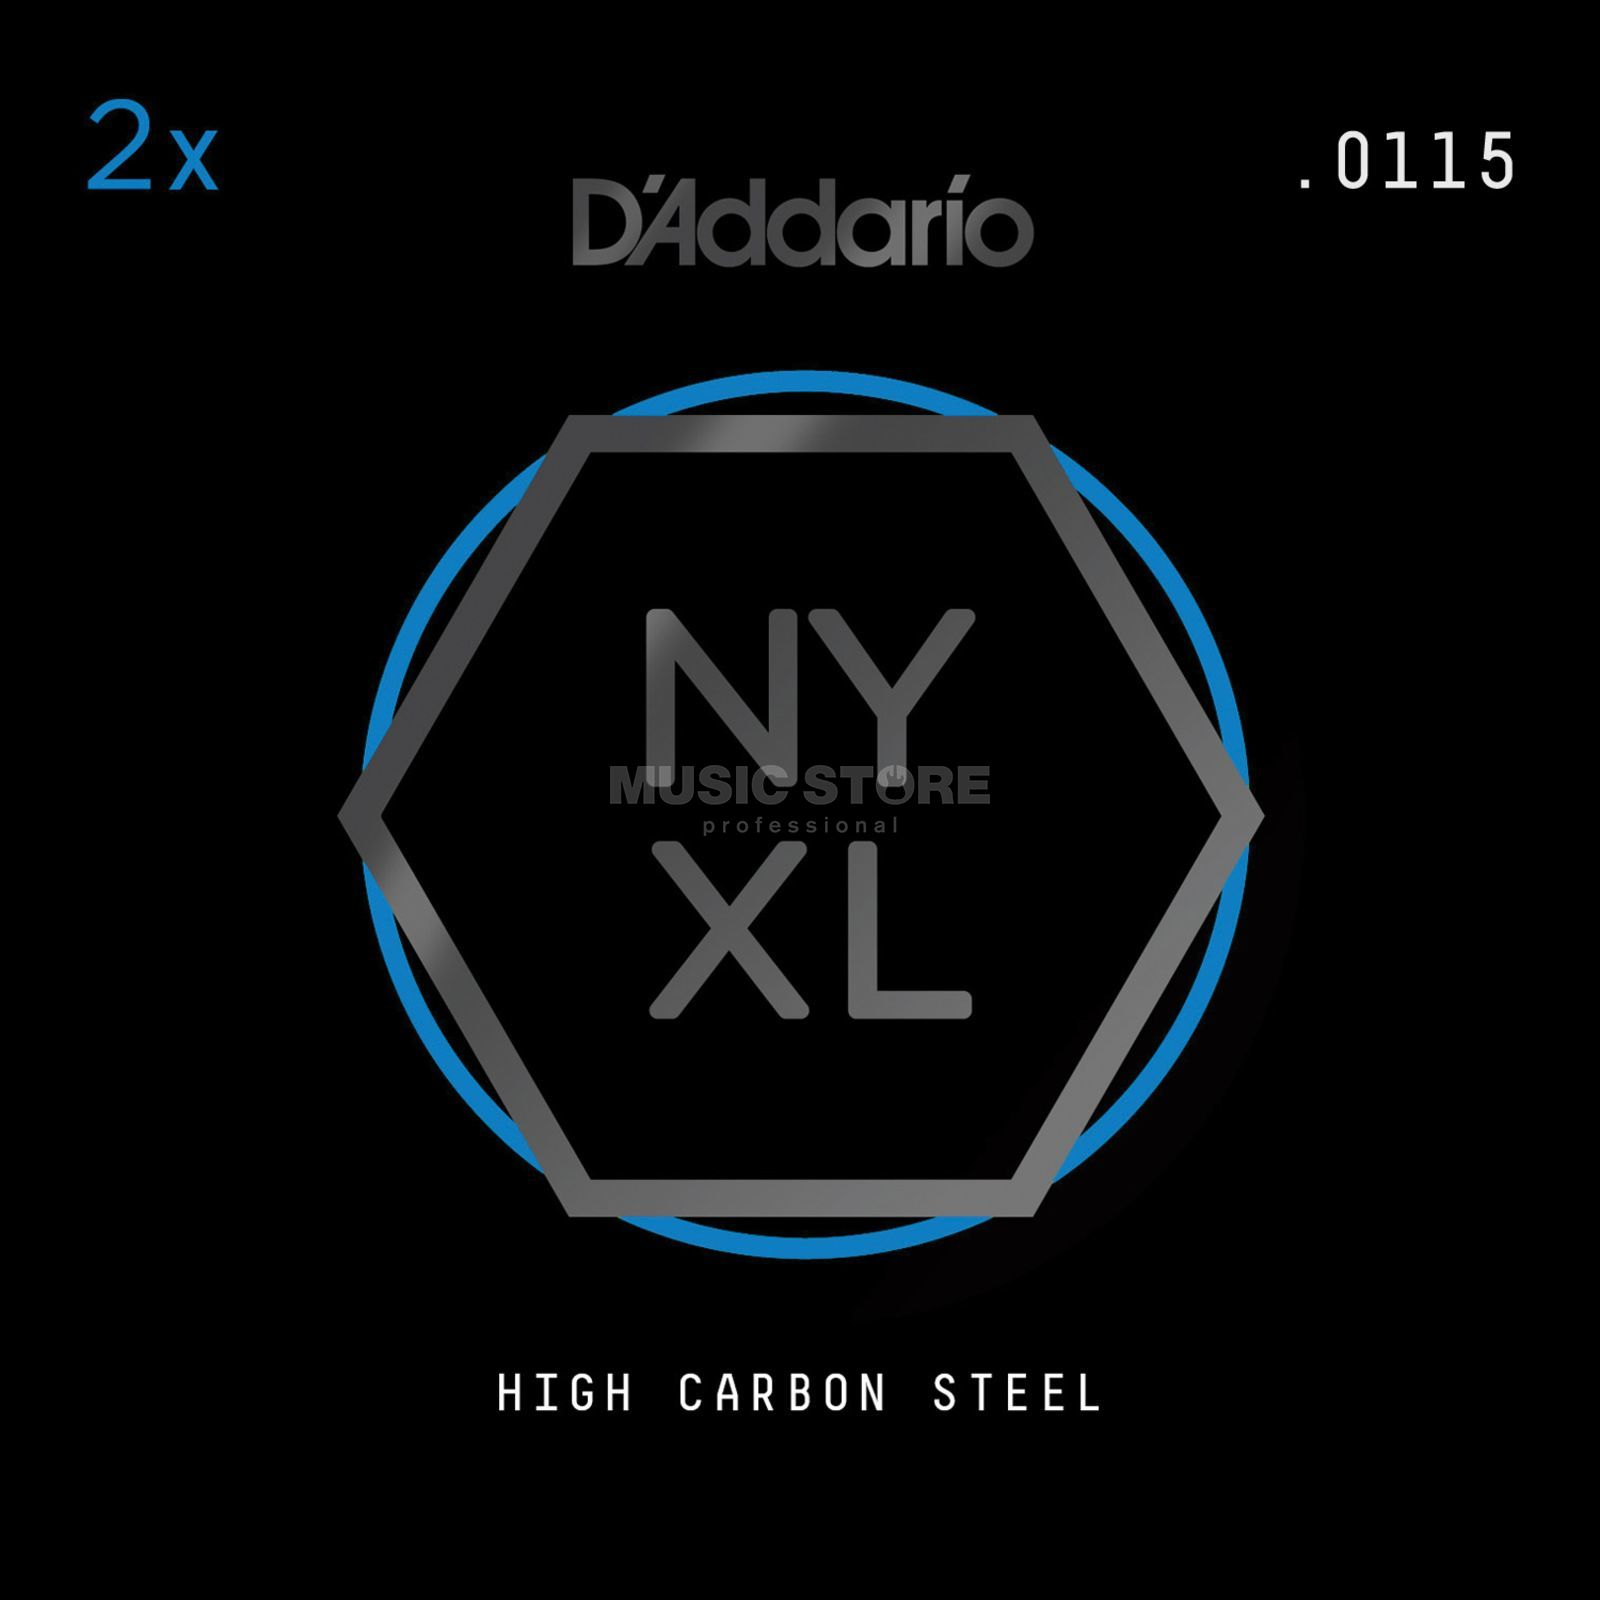 D'Addario NYPL0115 Plain Single String 2-Pack - High Carbon Steel Imagem do produto